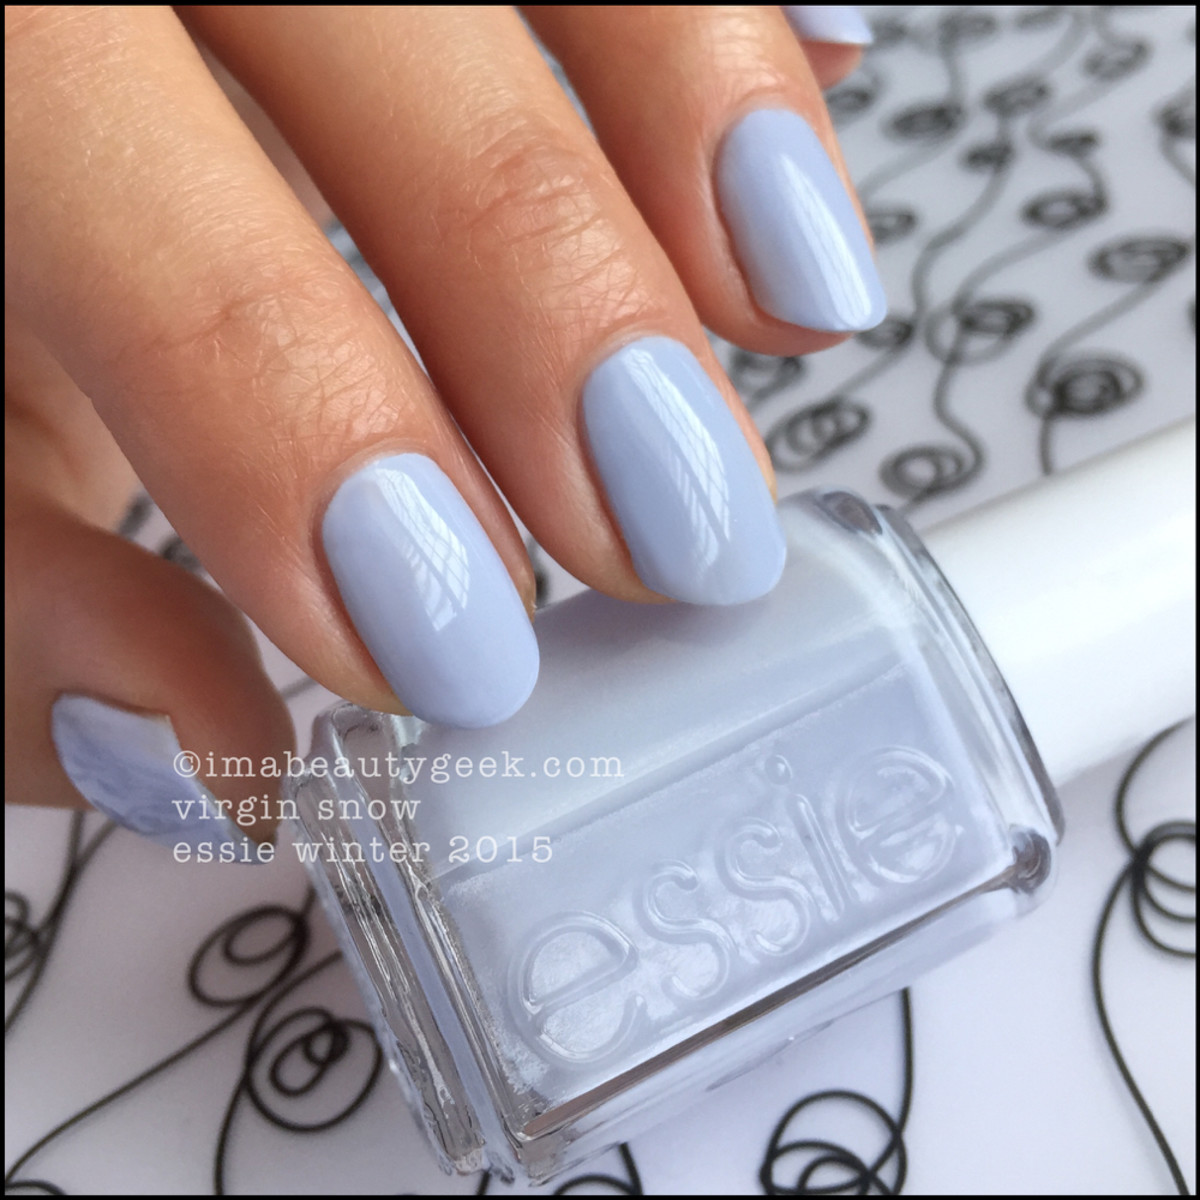 Essie Winter 2015 Collection_Essie Virgin Snow